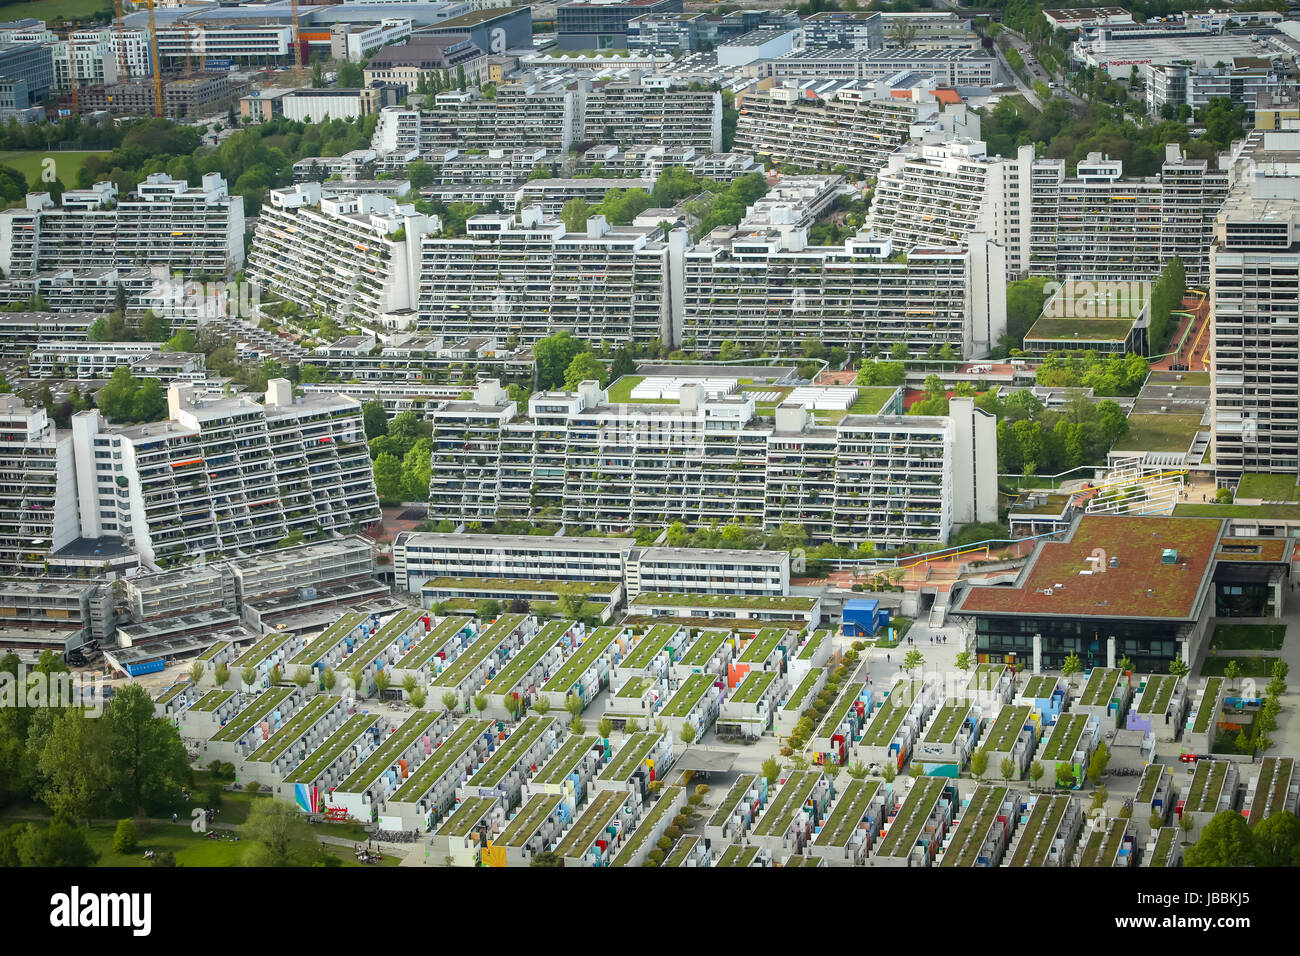 MUNICH, GERMANY - MAY 6, 2017 : Aerial view of the Olympic Village from Olympic Tower in Munich, Germany. The Olympic - Stock Image